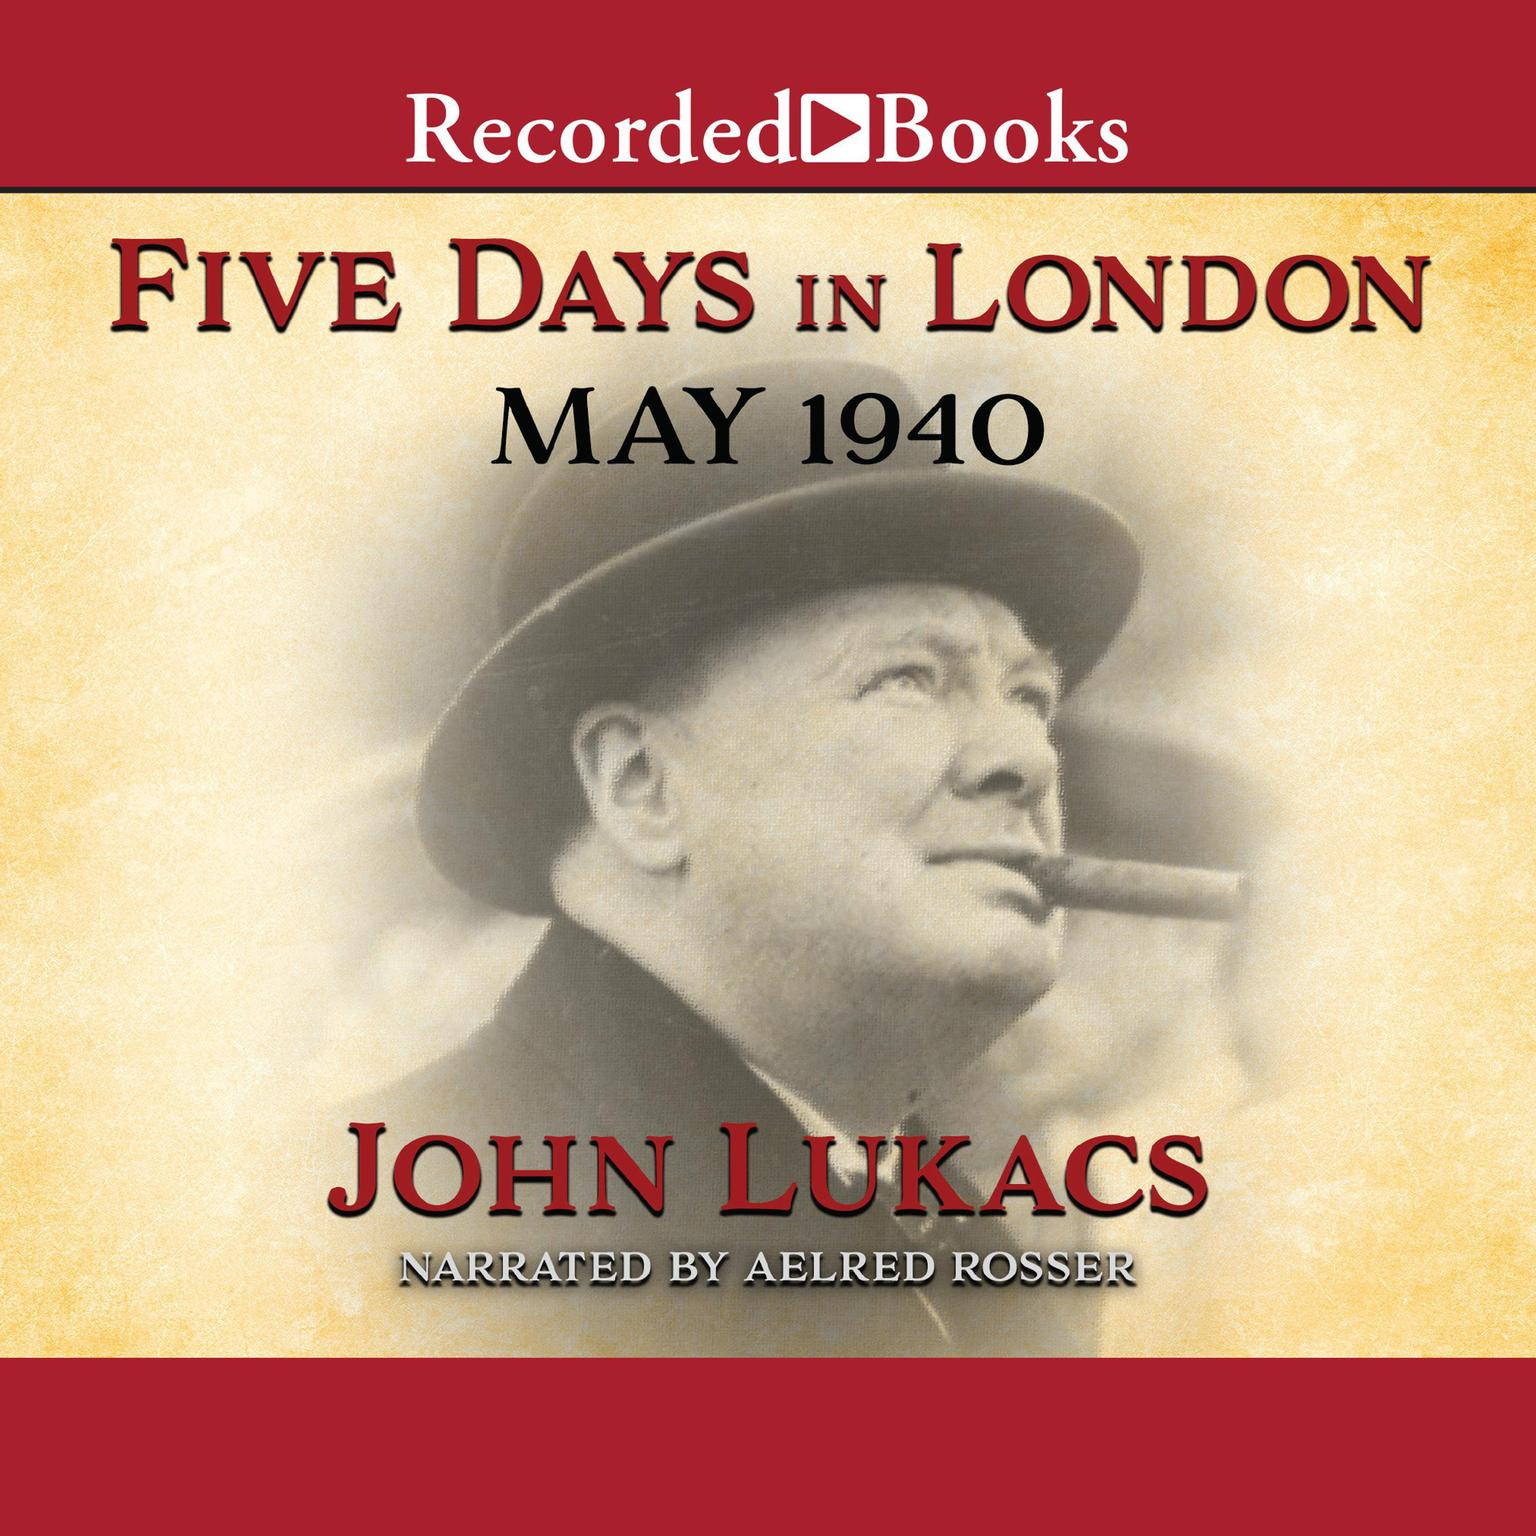 Printable Five Days in London: May 1940 Audiobook Cover Art